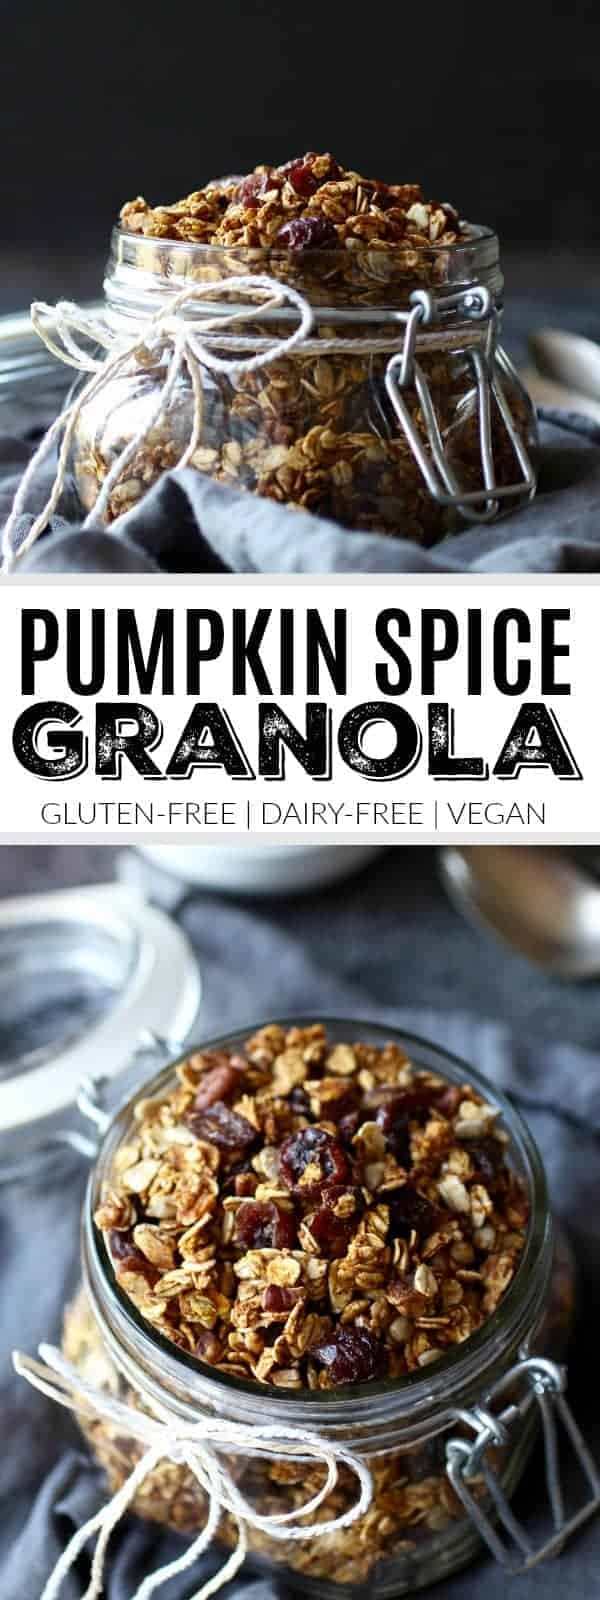 Pumpkin Spice Granola   It wouldn't be fall without all things pumpkin! Feel free to mix and match the nuts, seeds and dried fruit to make it your own and serve with milk of choice or yogurt (or straight from the jar).